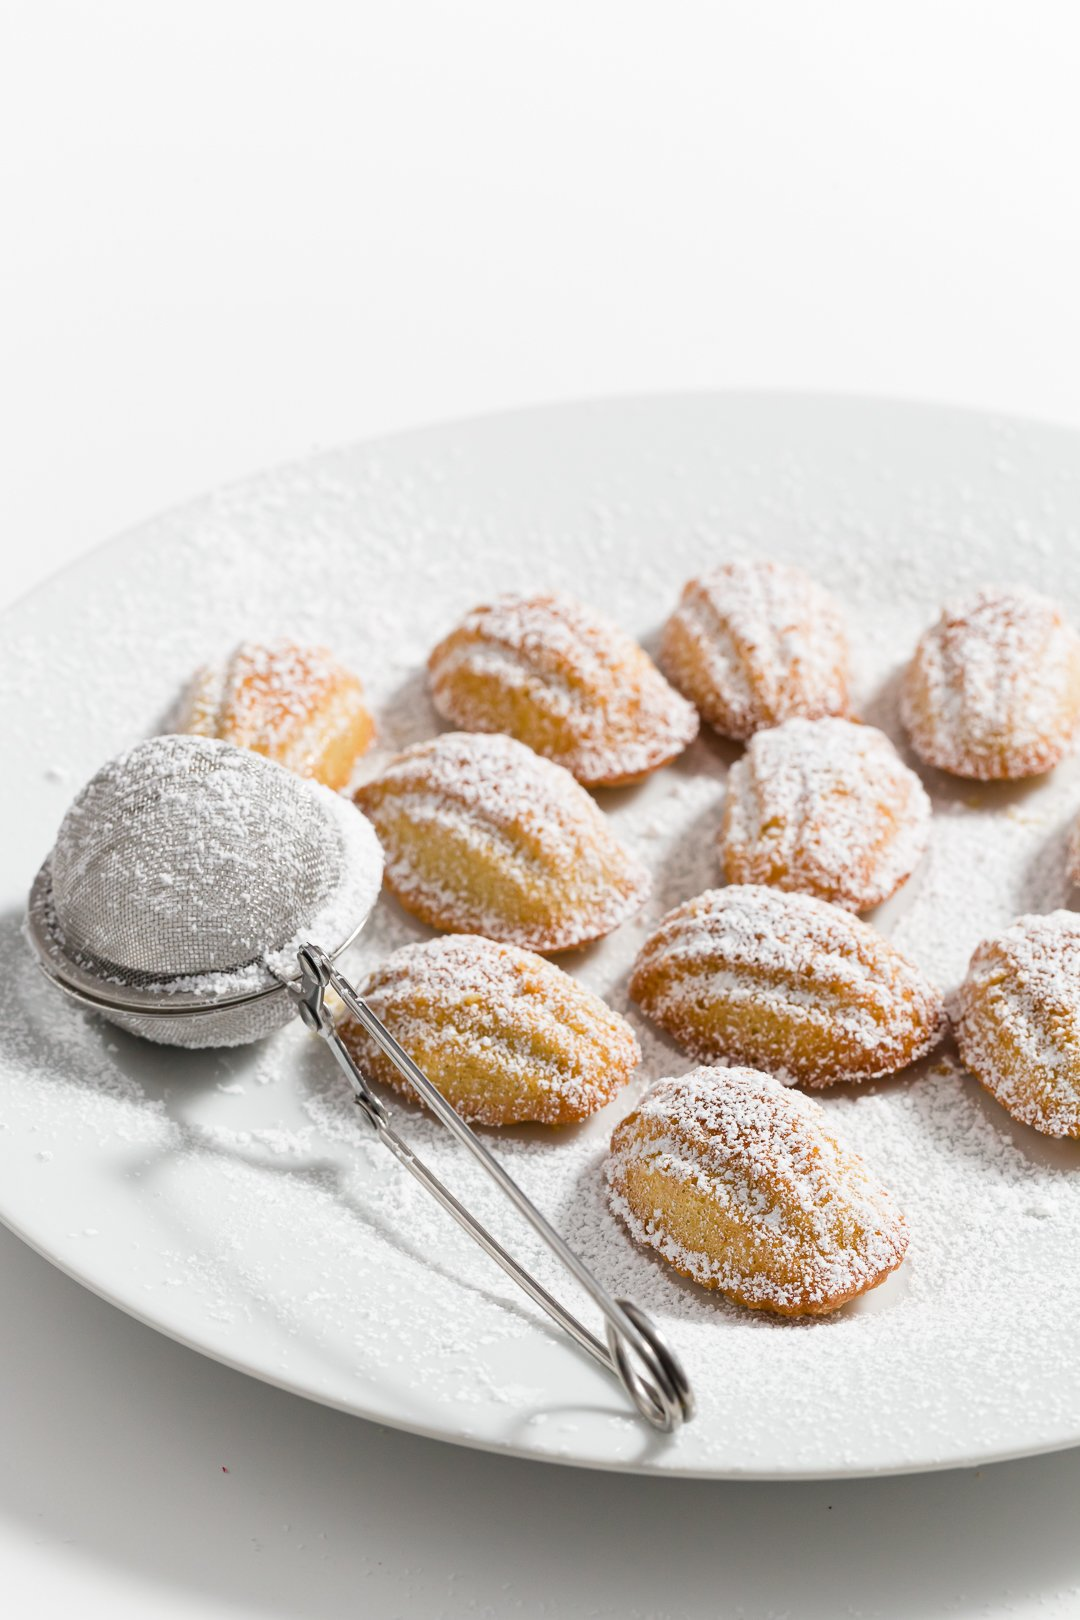 Mini madeleines dusted in powdered sugar